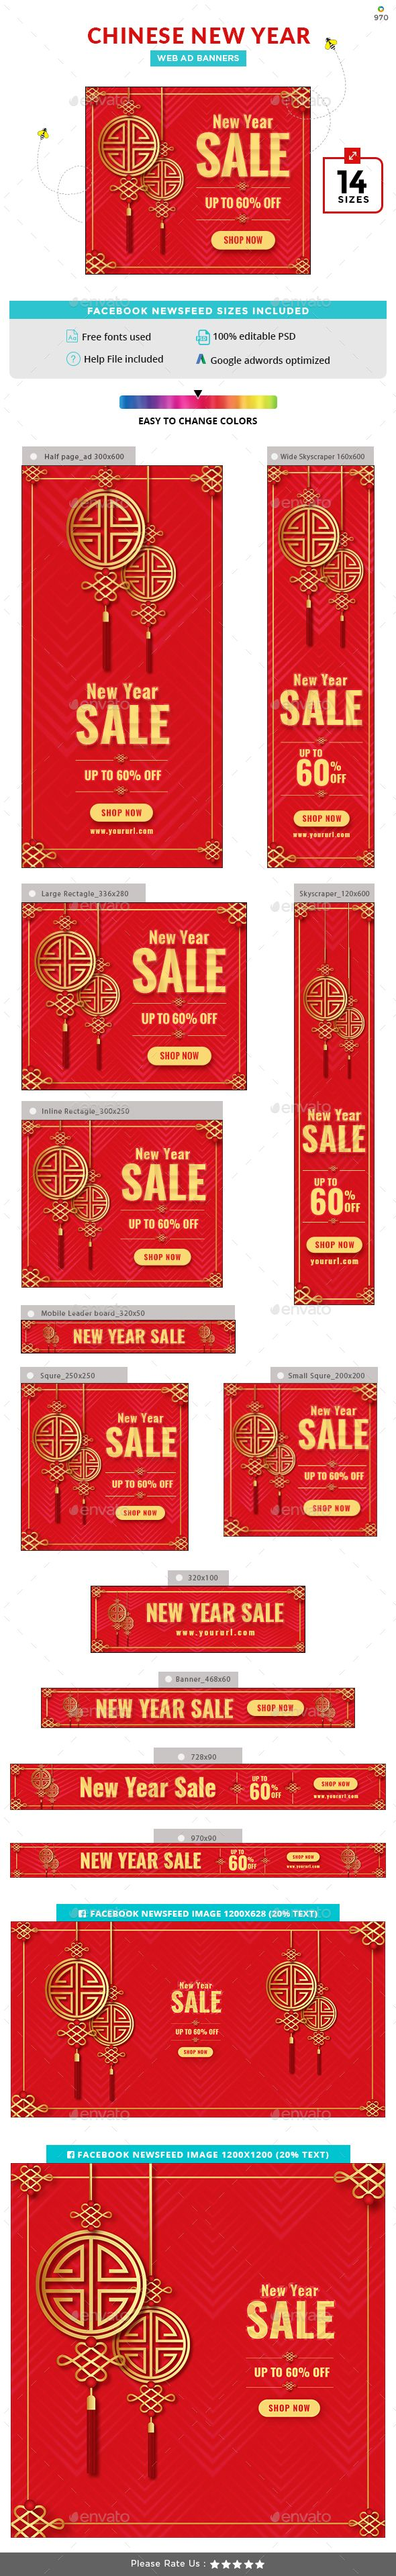 Chinese New Year Banner Set New year banner, Banner